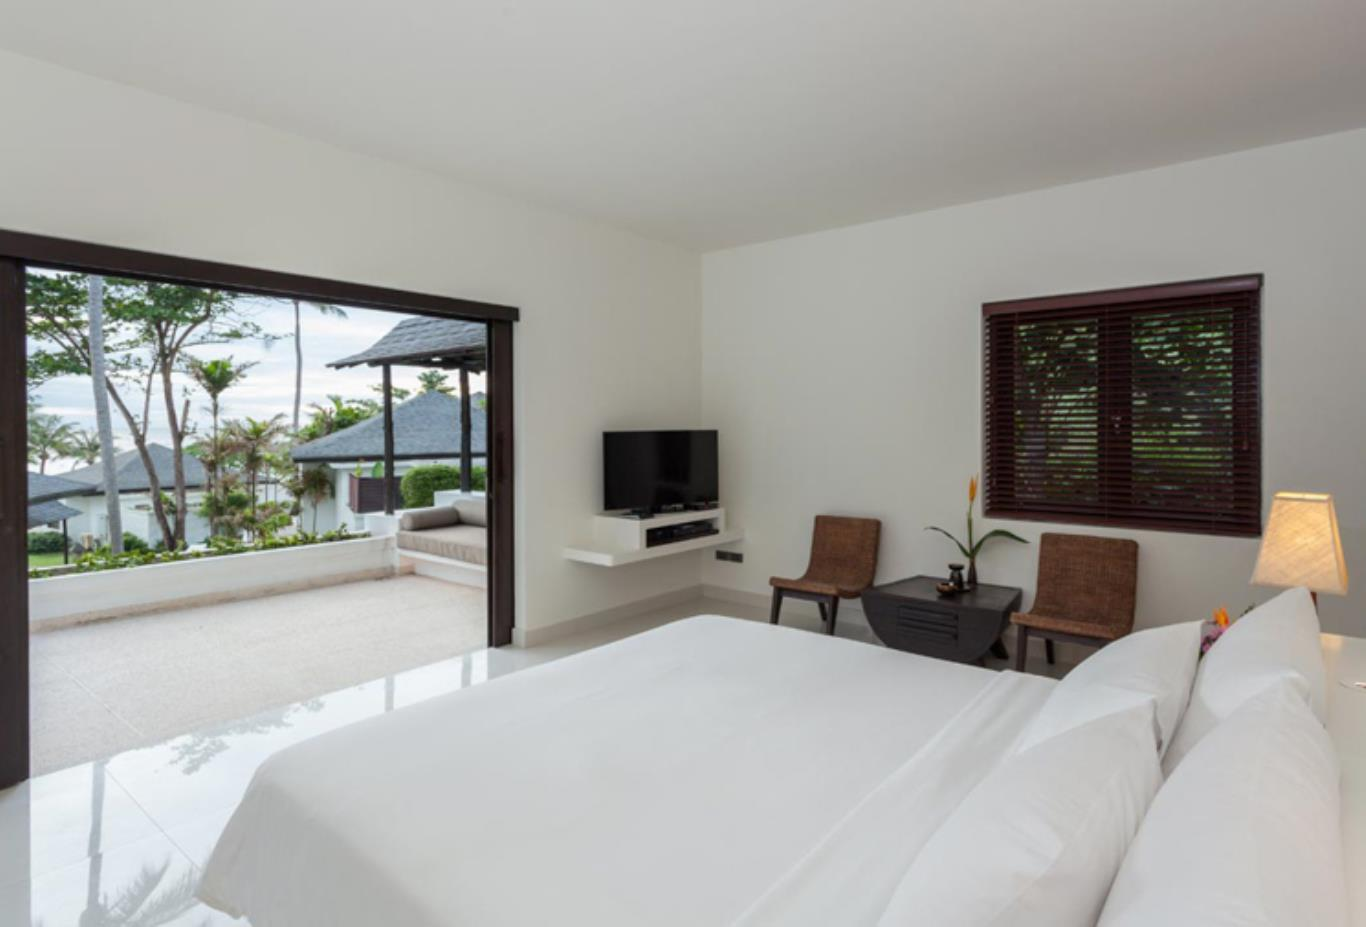 Grand Deluxe Villa bedroom